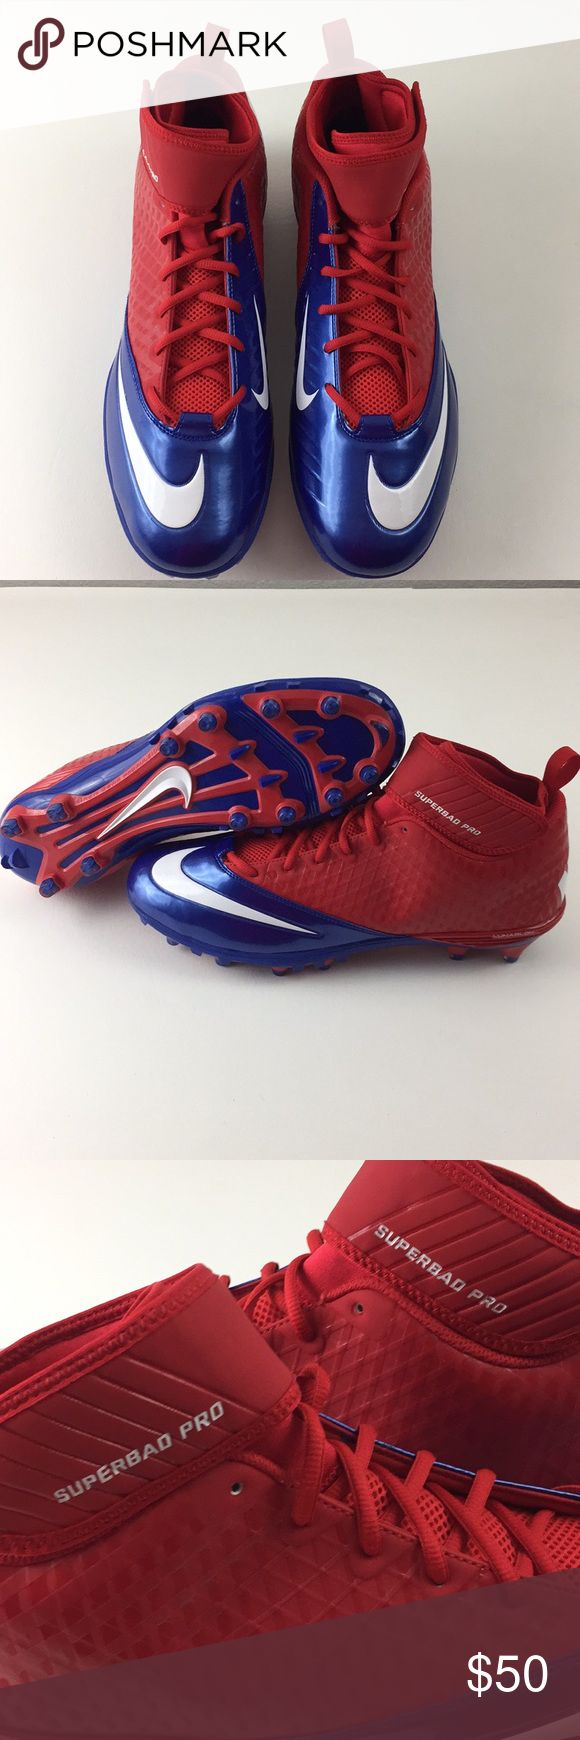 Nike Superbad Pro Cleats New! Nike Lunar Superbad Pro TD Football Cleats. Men's size 15. Red, blue and white. Nike 534994-604. Brand new, no box. Nike Shoes